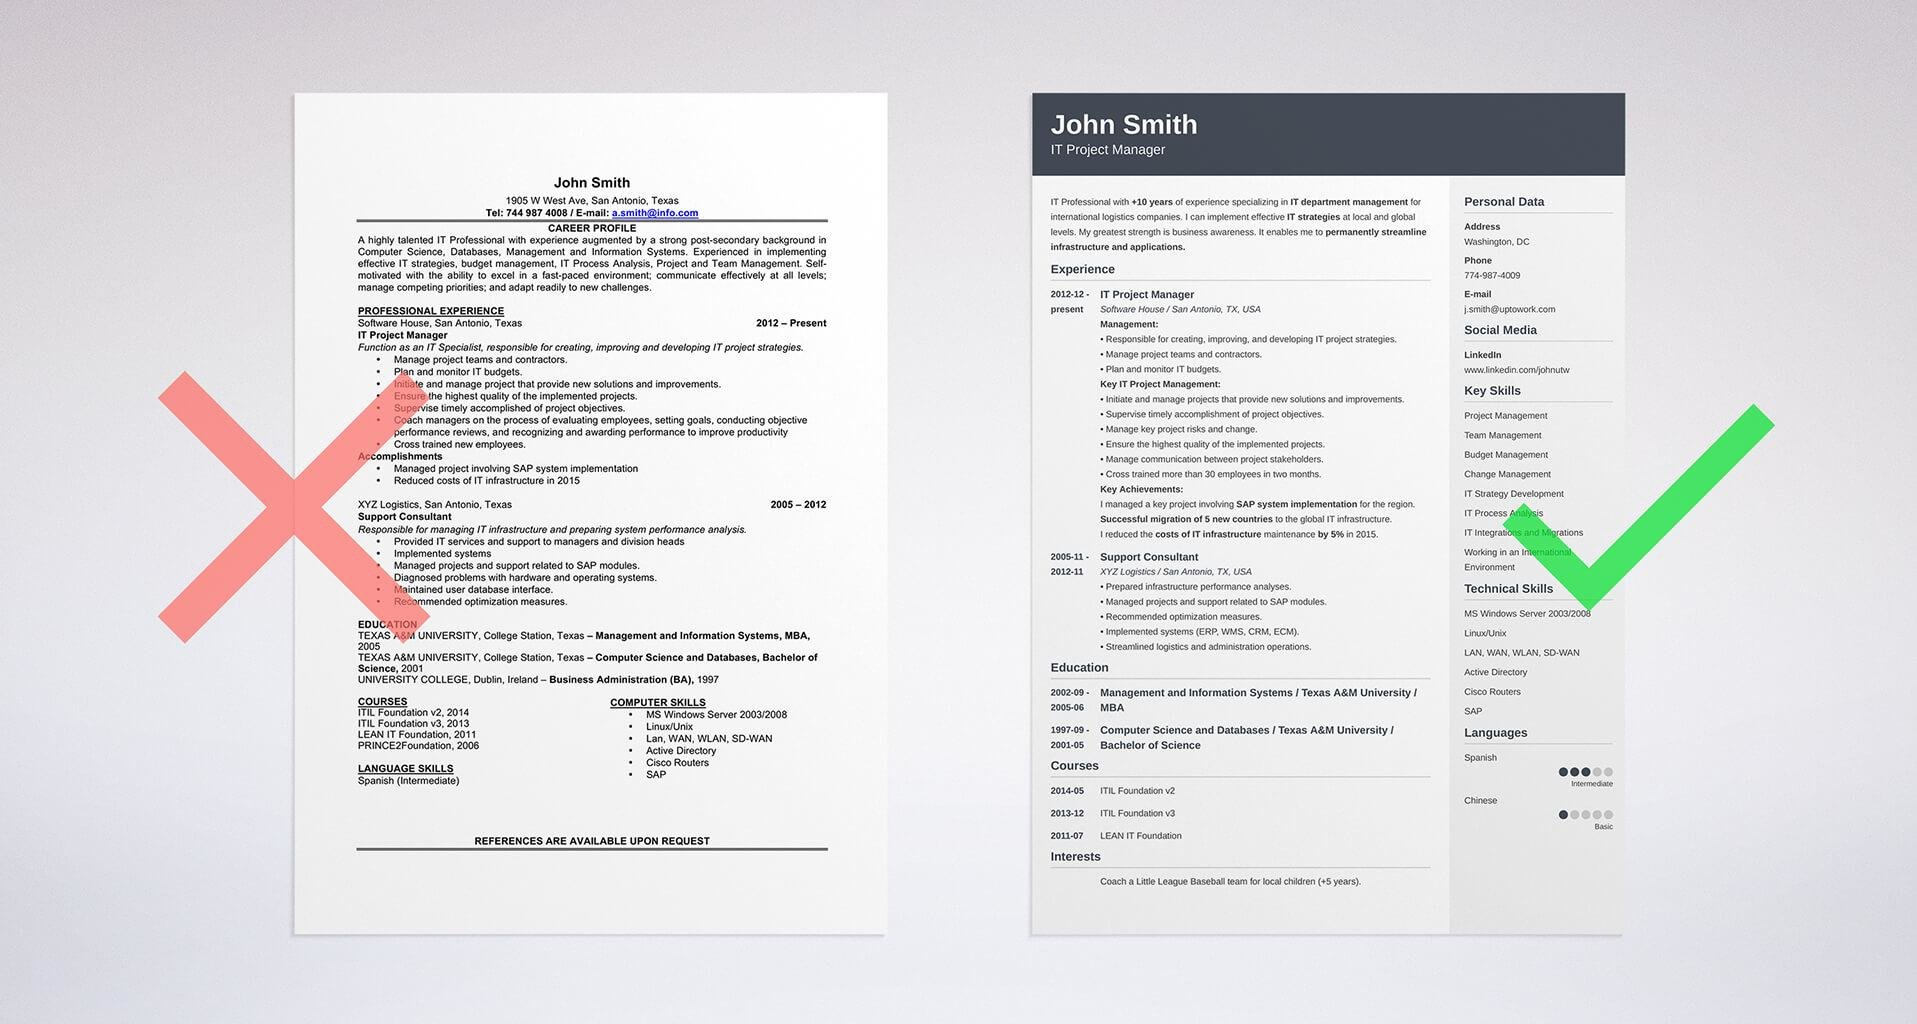 3 resume formats how to choose the best one examples. Resume Example. Resume CV Cover Letter